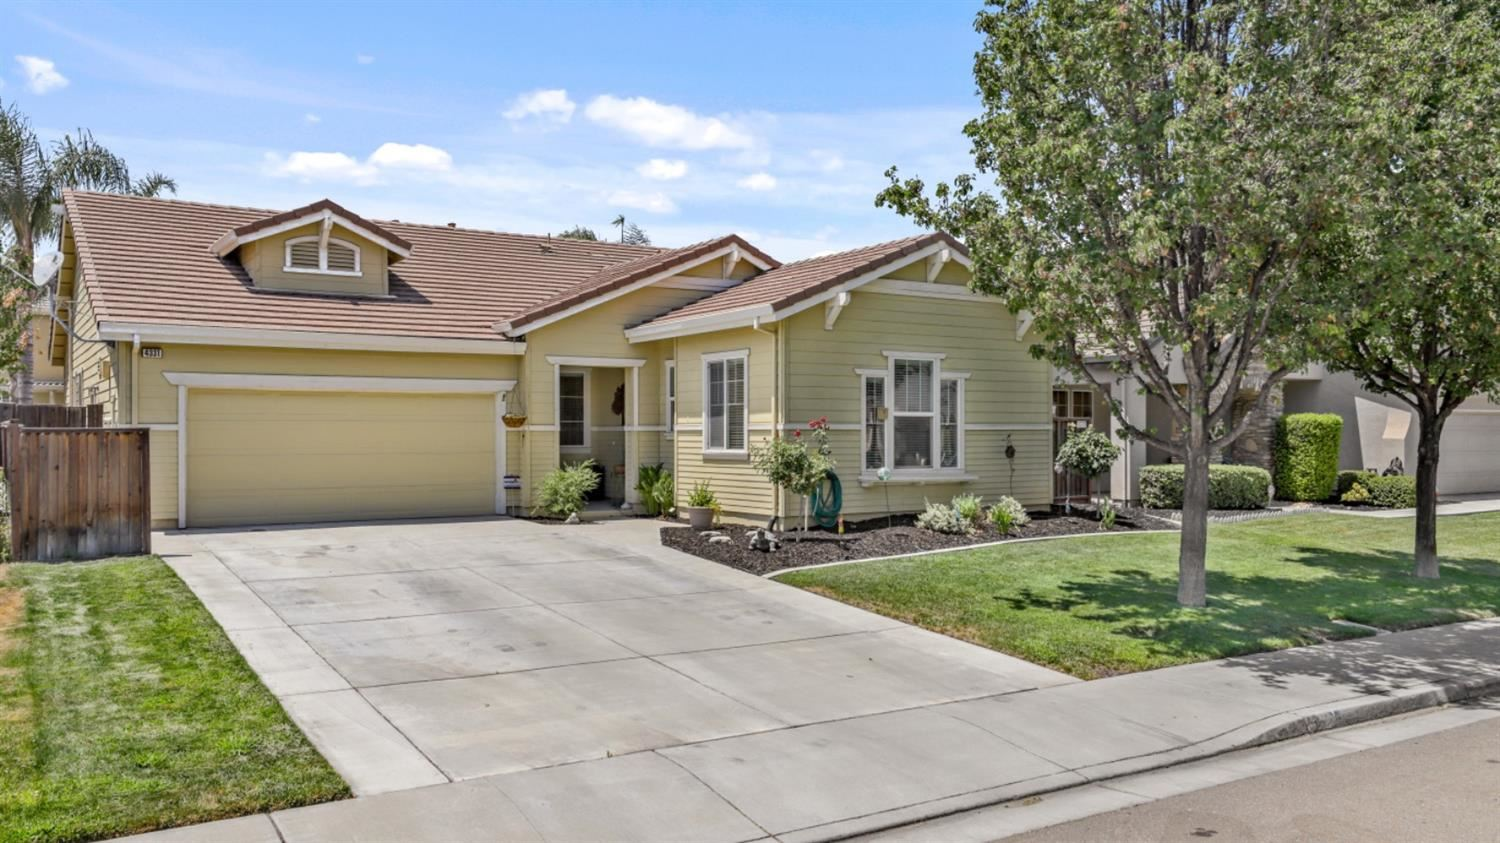 4331 Mulberry Court, Tracy, CA 95377 - MLS#: 221085524